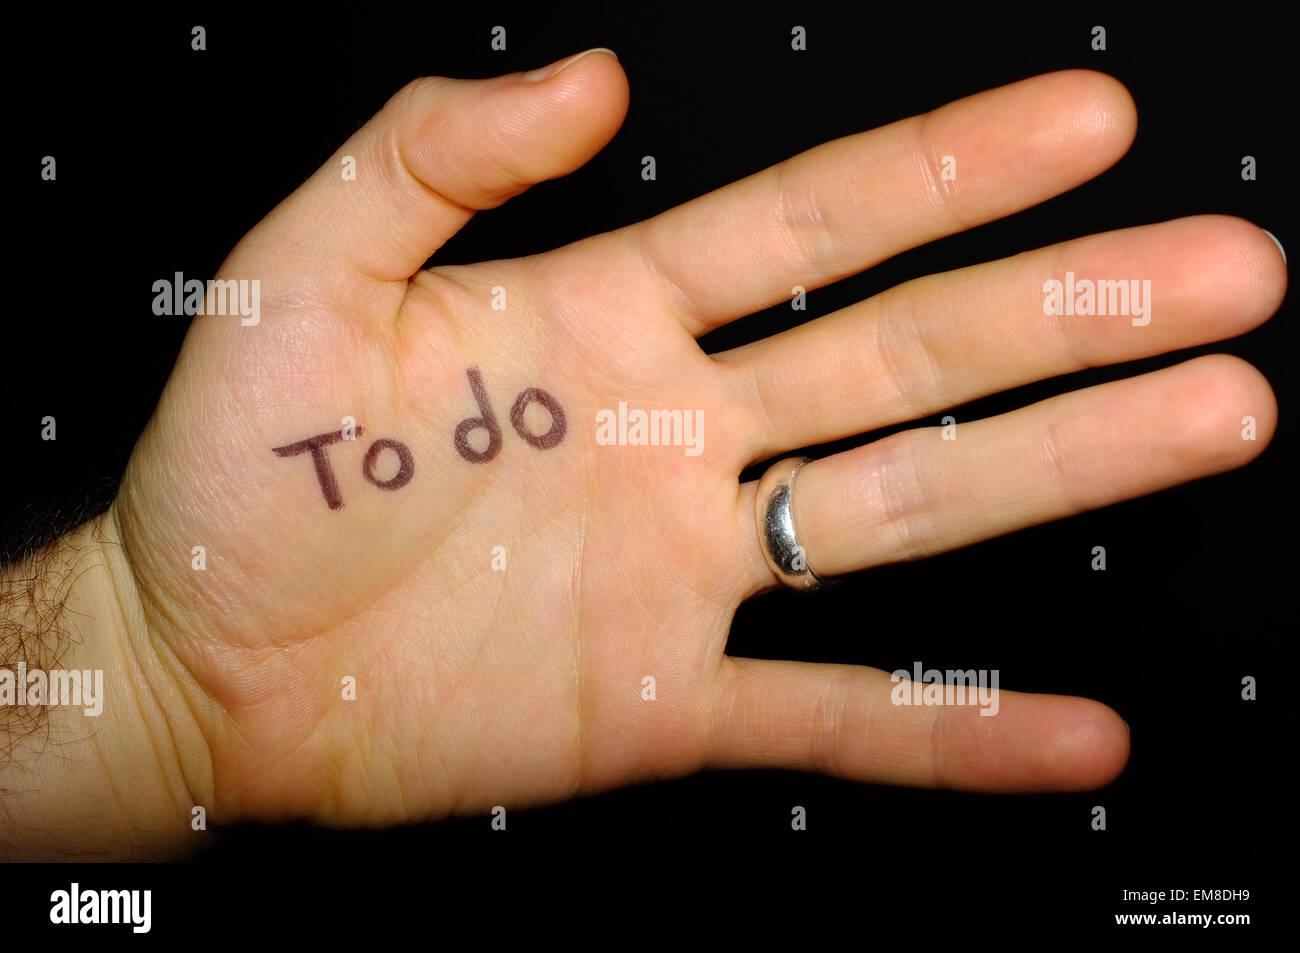 To do written on the palm of a hand photographed against a black background. - Stock Image